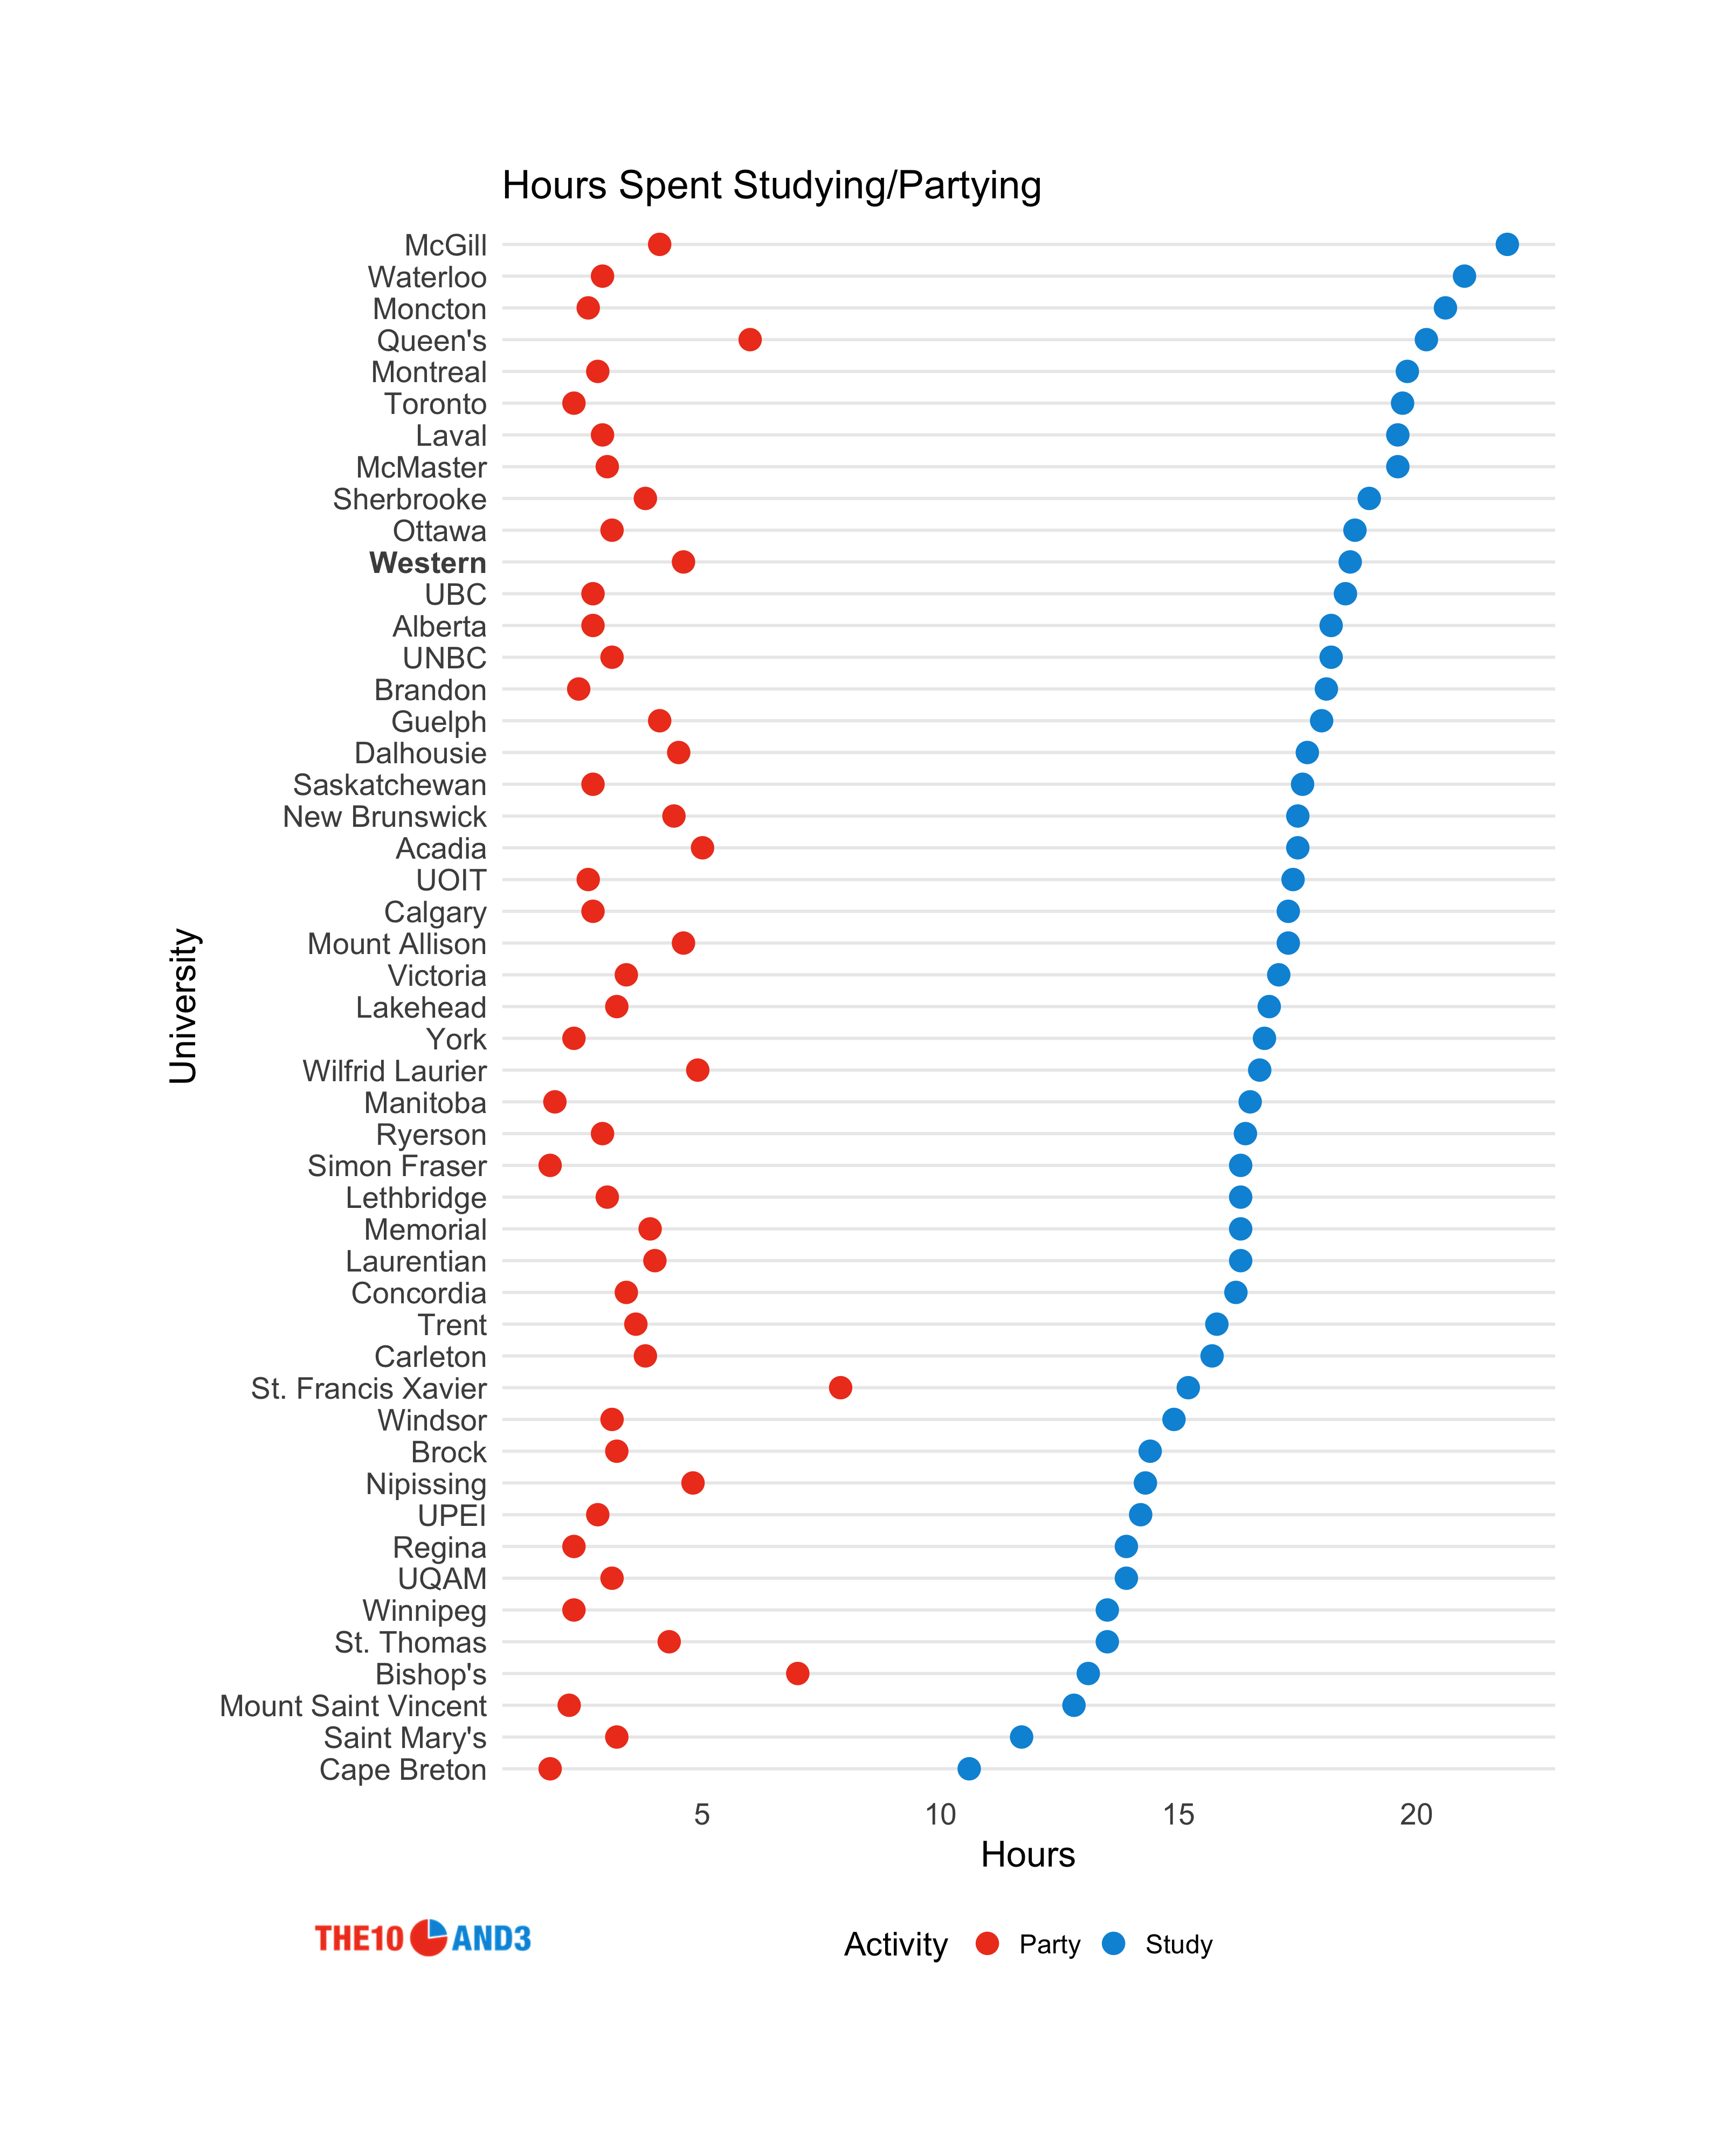 A charts showing the hours spent studying vs. partying across Canadian universities